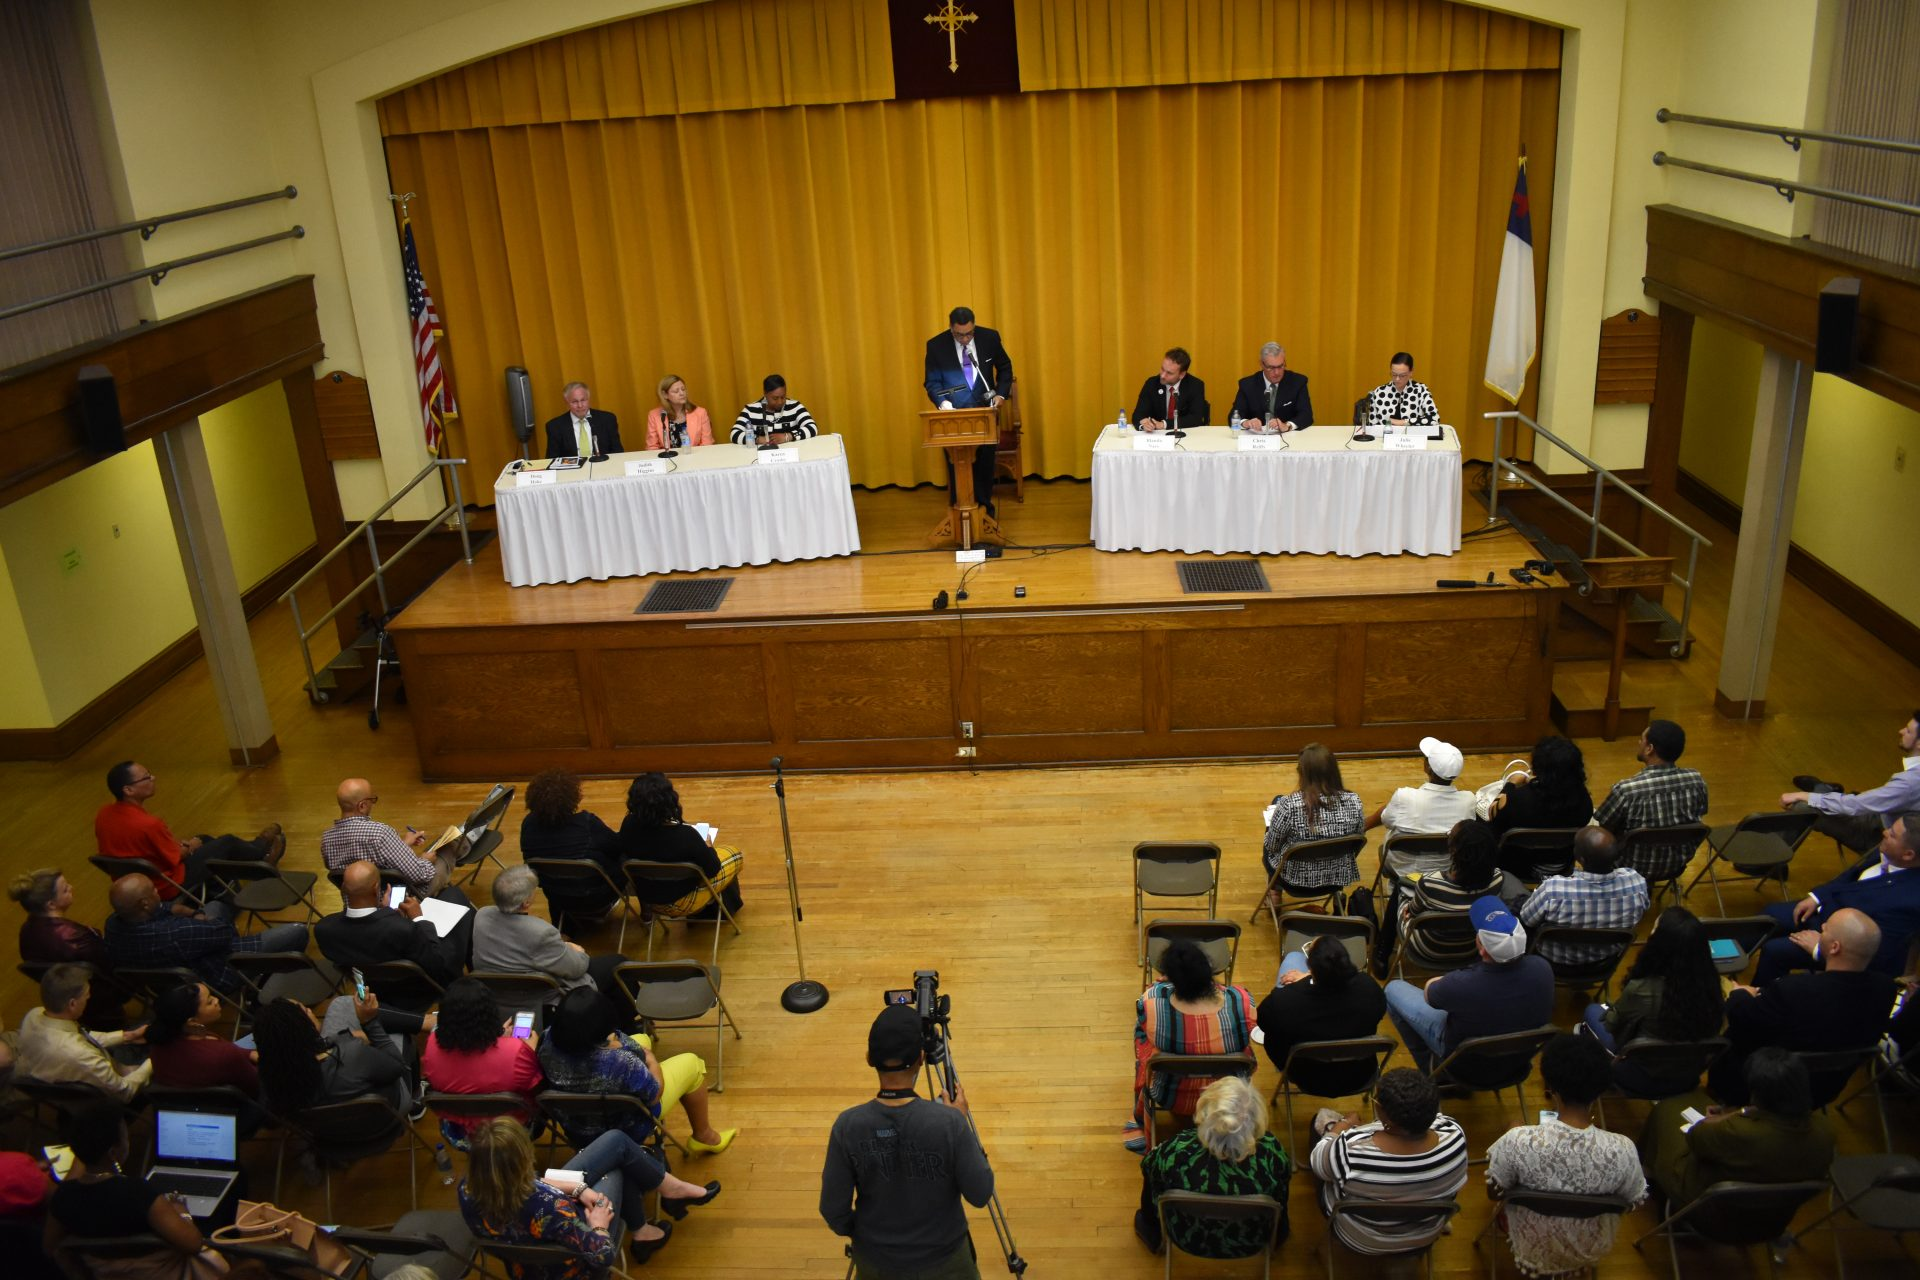 Six candidates for York County commissioner participate in a forum on April 10, 2019, at Zion United Church of Christ in York.